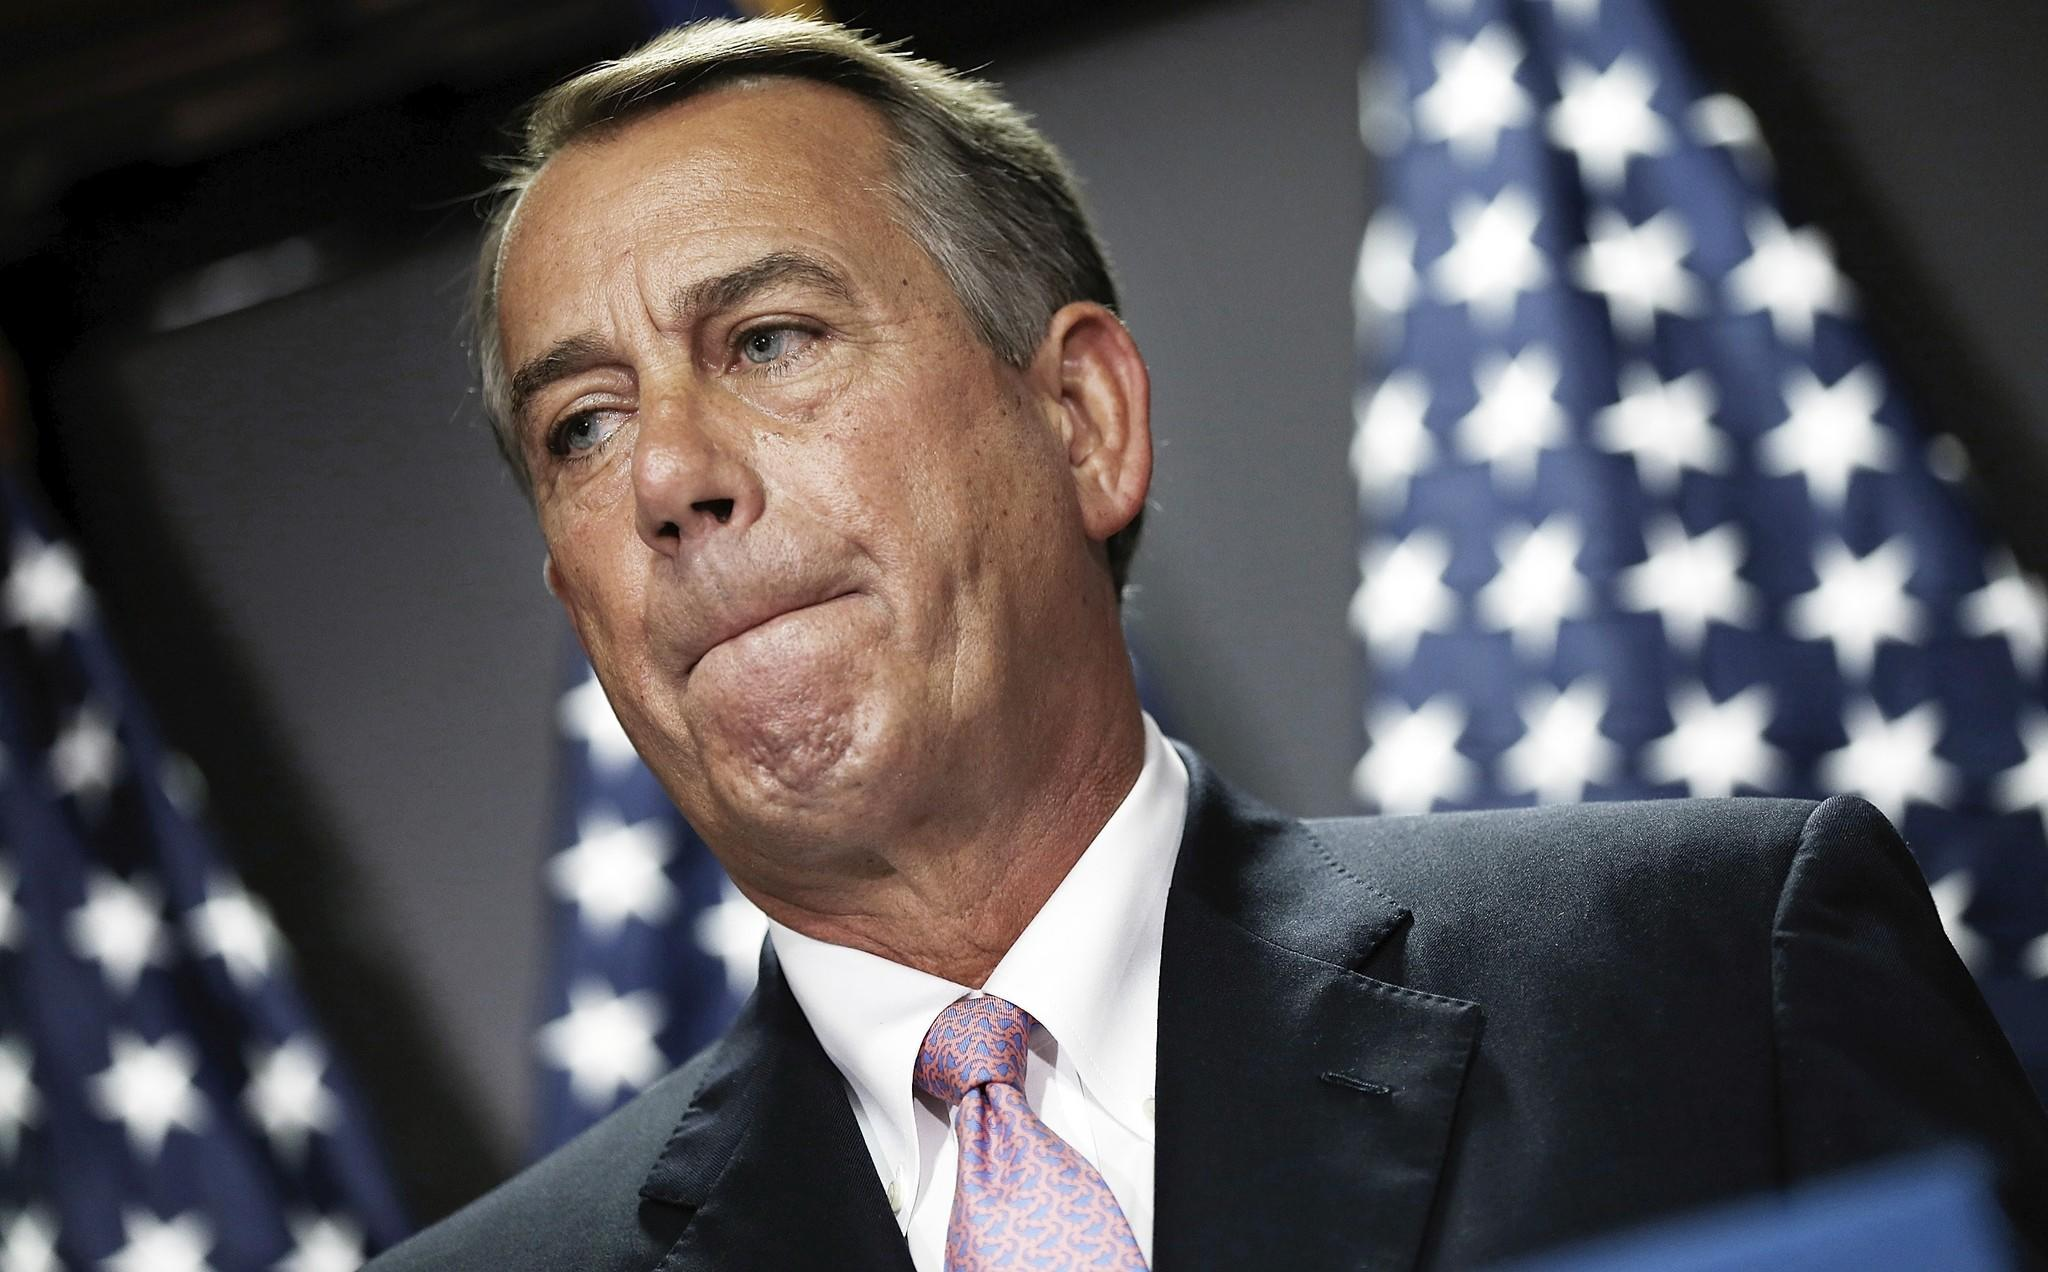 House Speaker John Boehner (agreed to form a select committee to further investigate the Benghazi controversy.